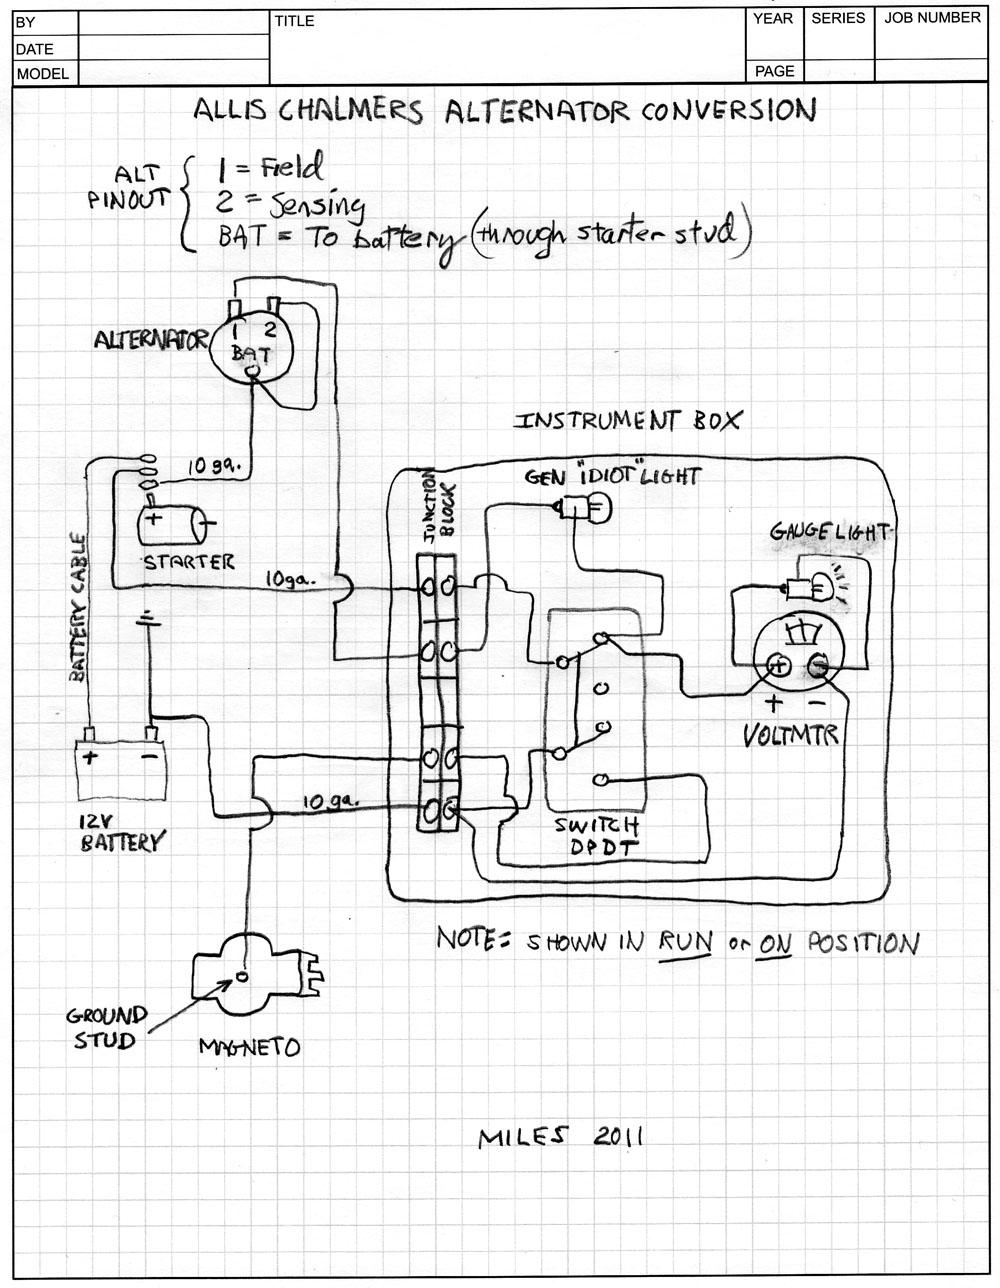 ACshematicjpg squid's fab shop allis chalmers b alternator conversion b&c alternator wiring diagram at gsmx.co